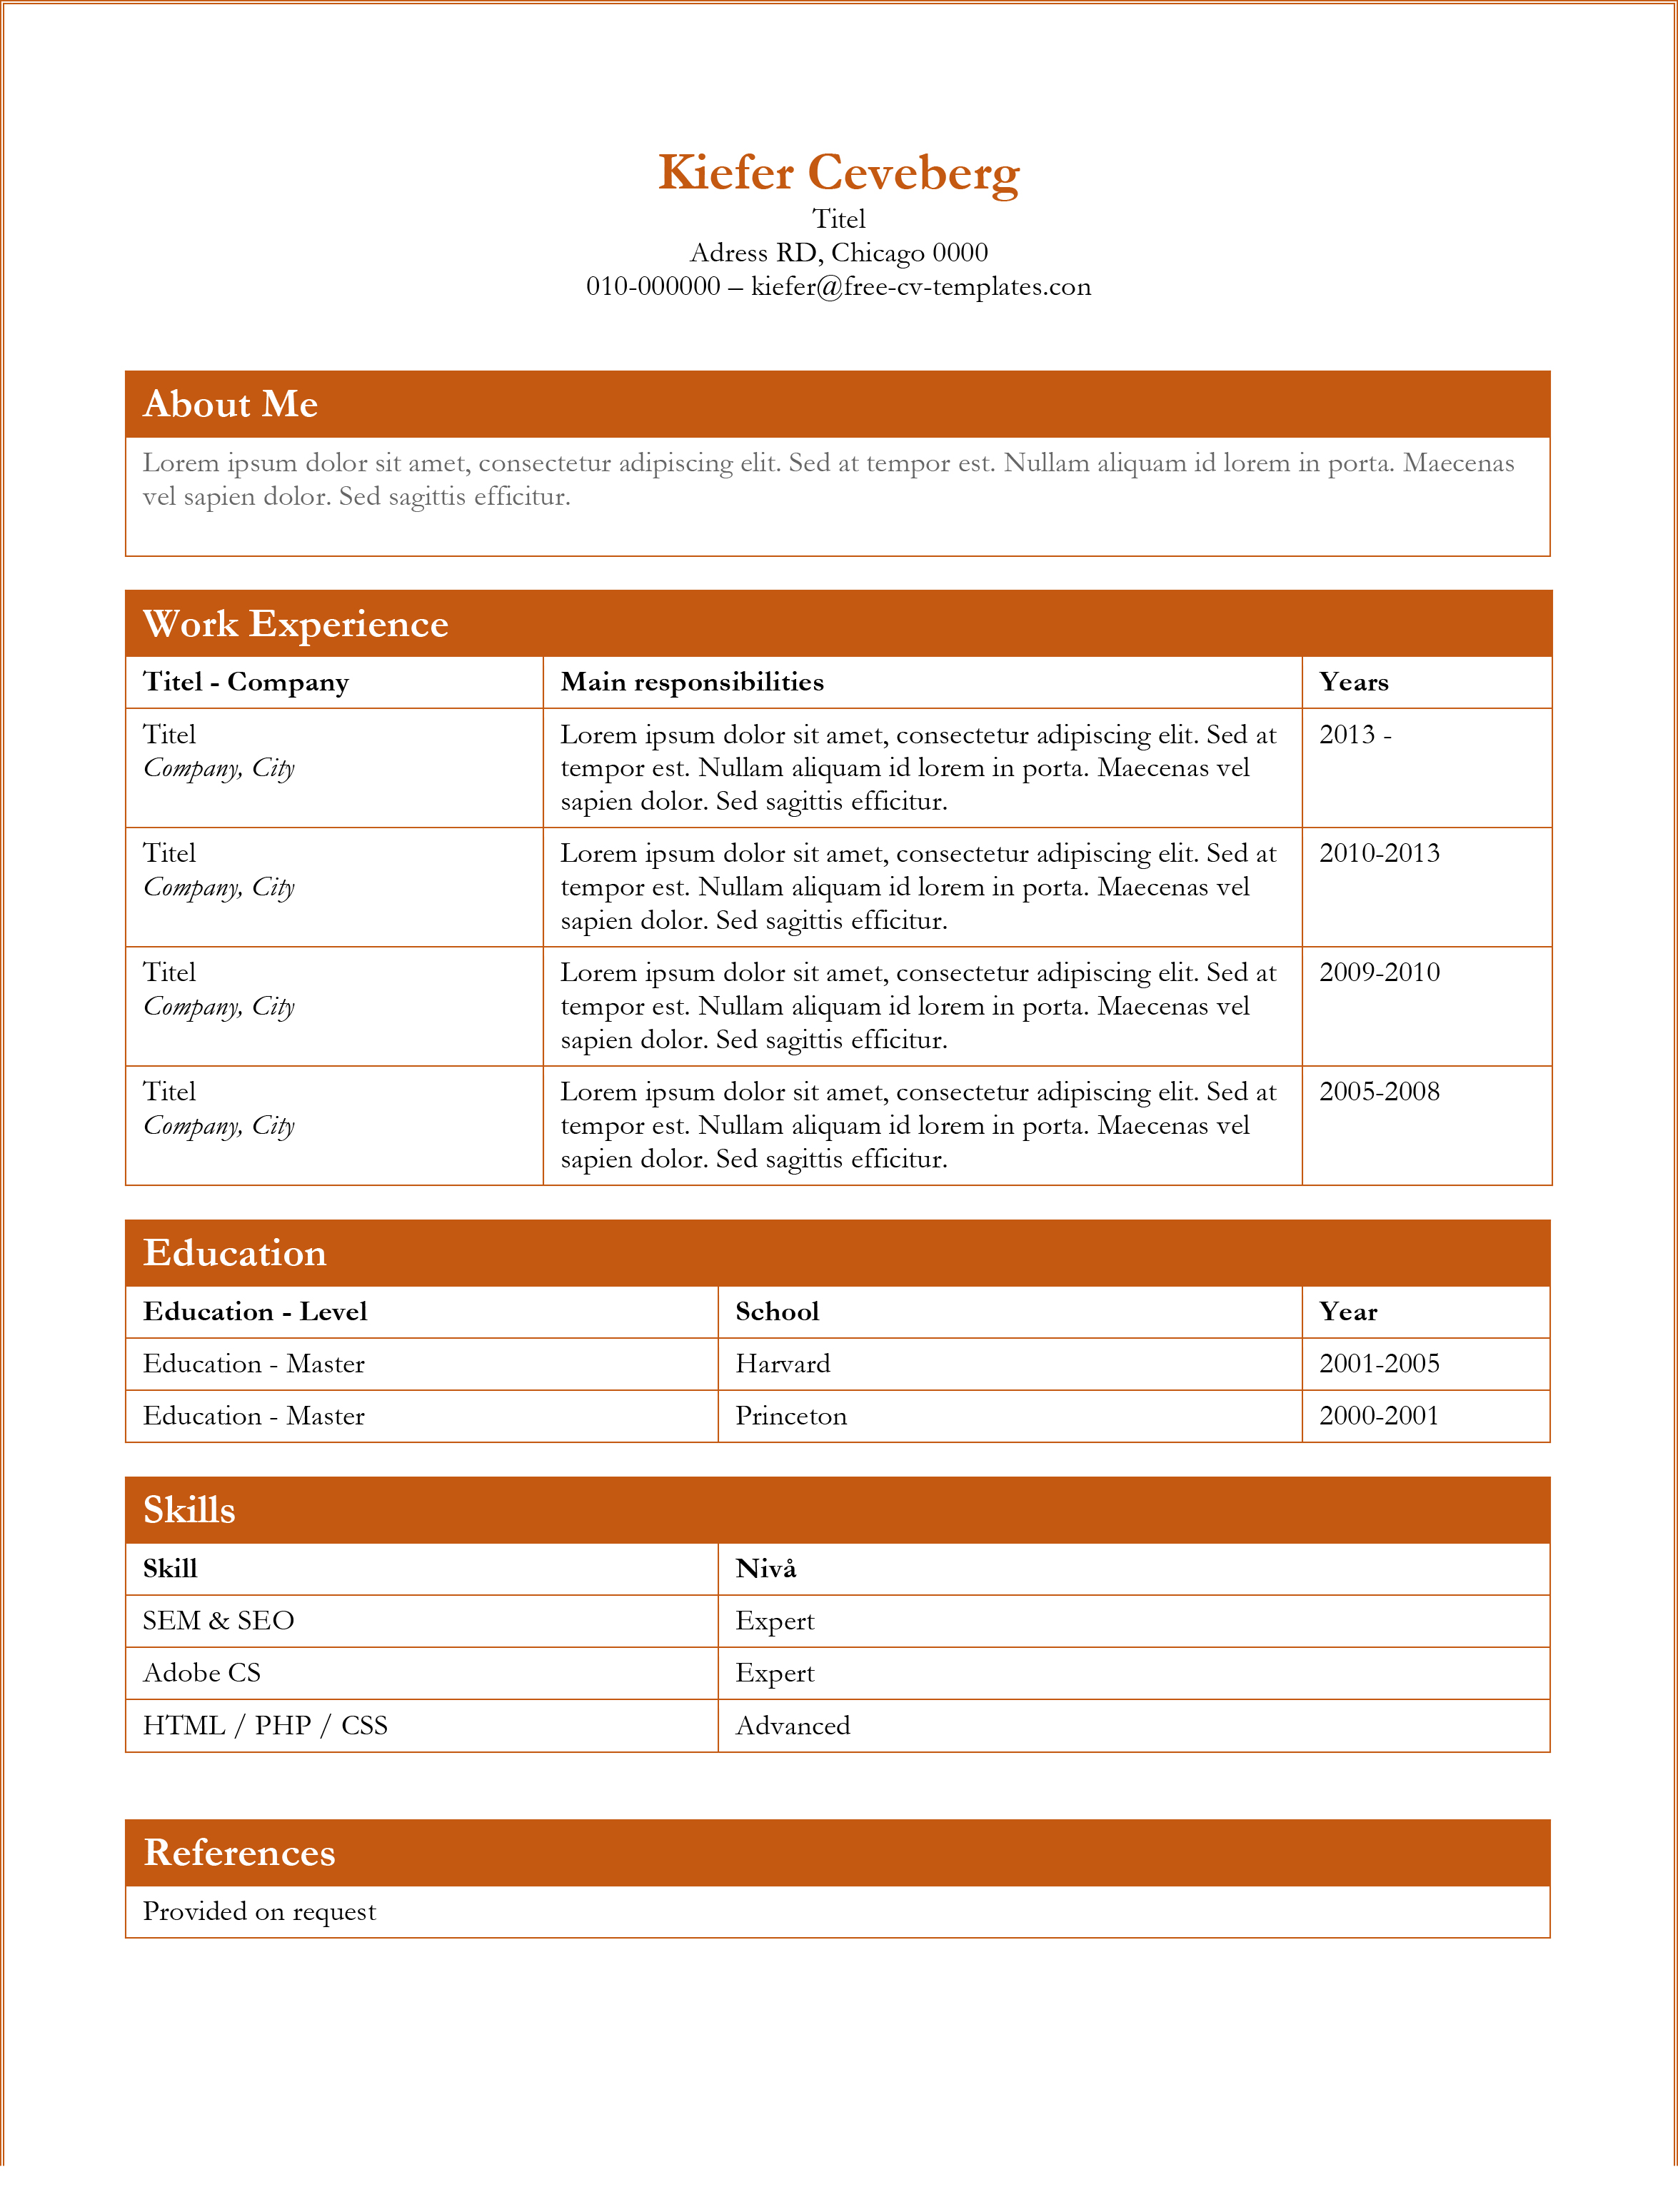 cv and resume templates word indesign illustrator photoshop